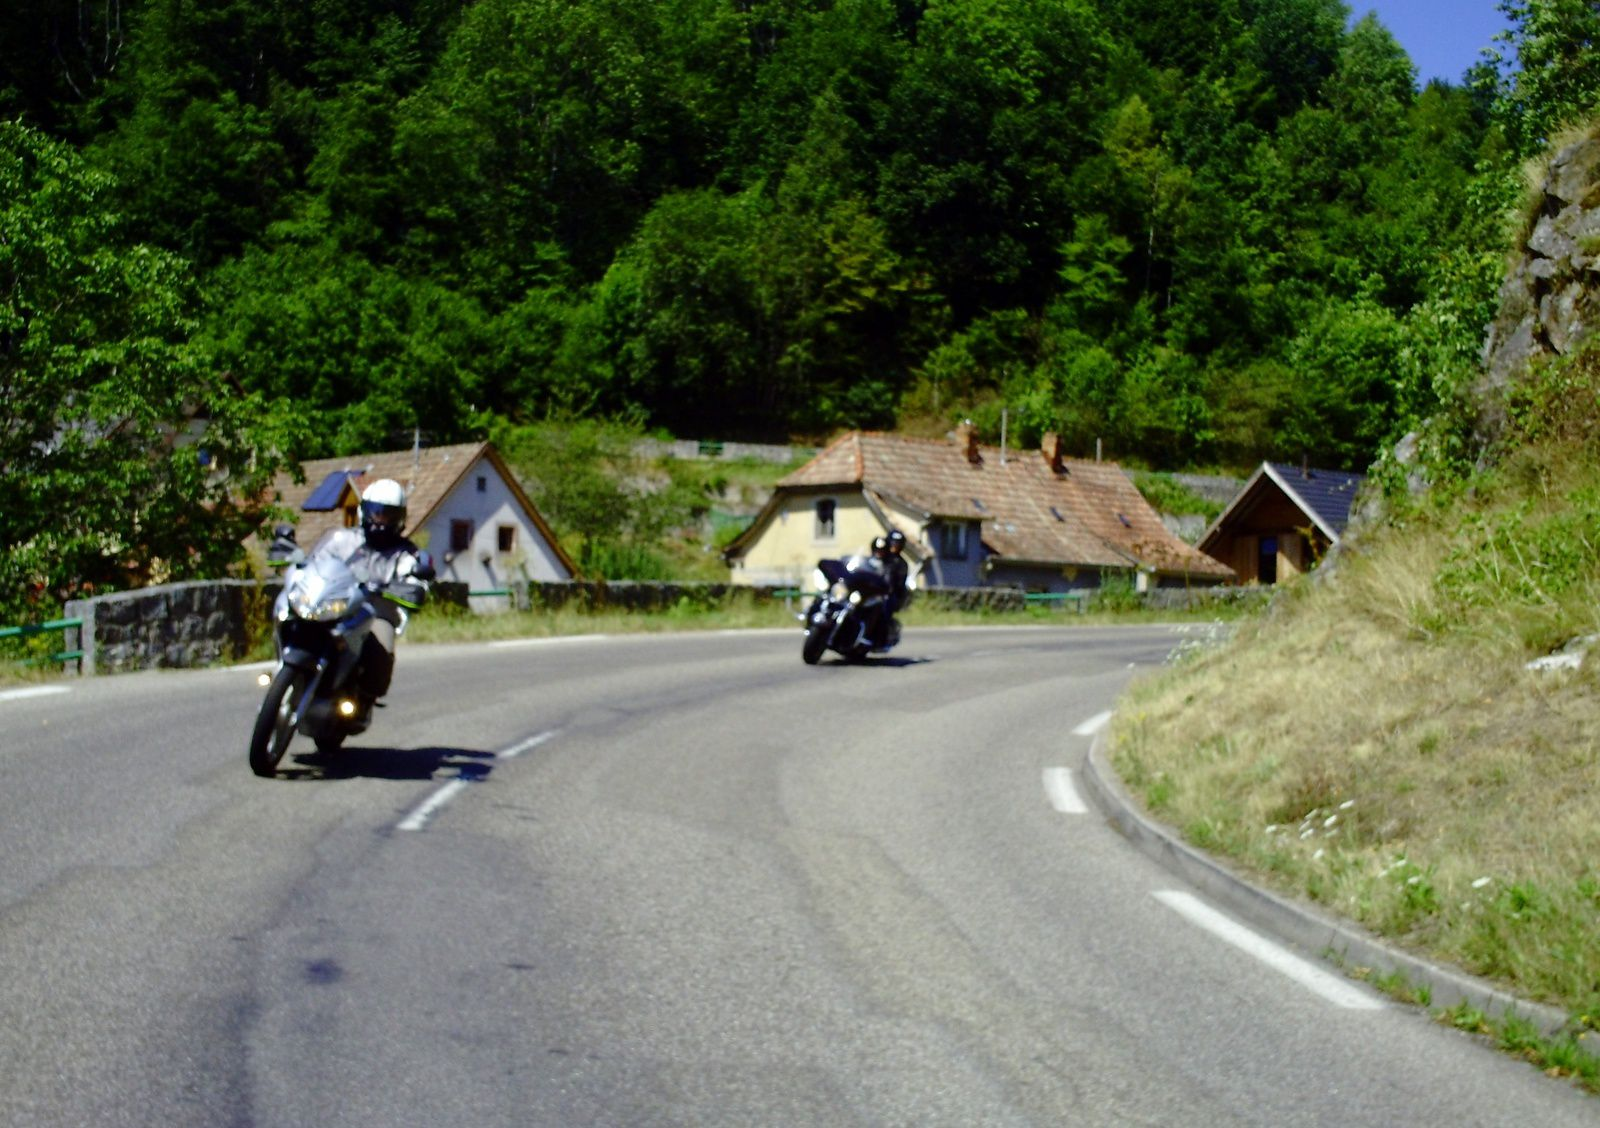 Goldwing - Ballade à travers les vosges en moto